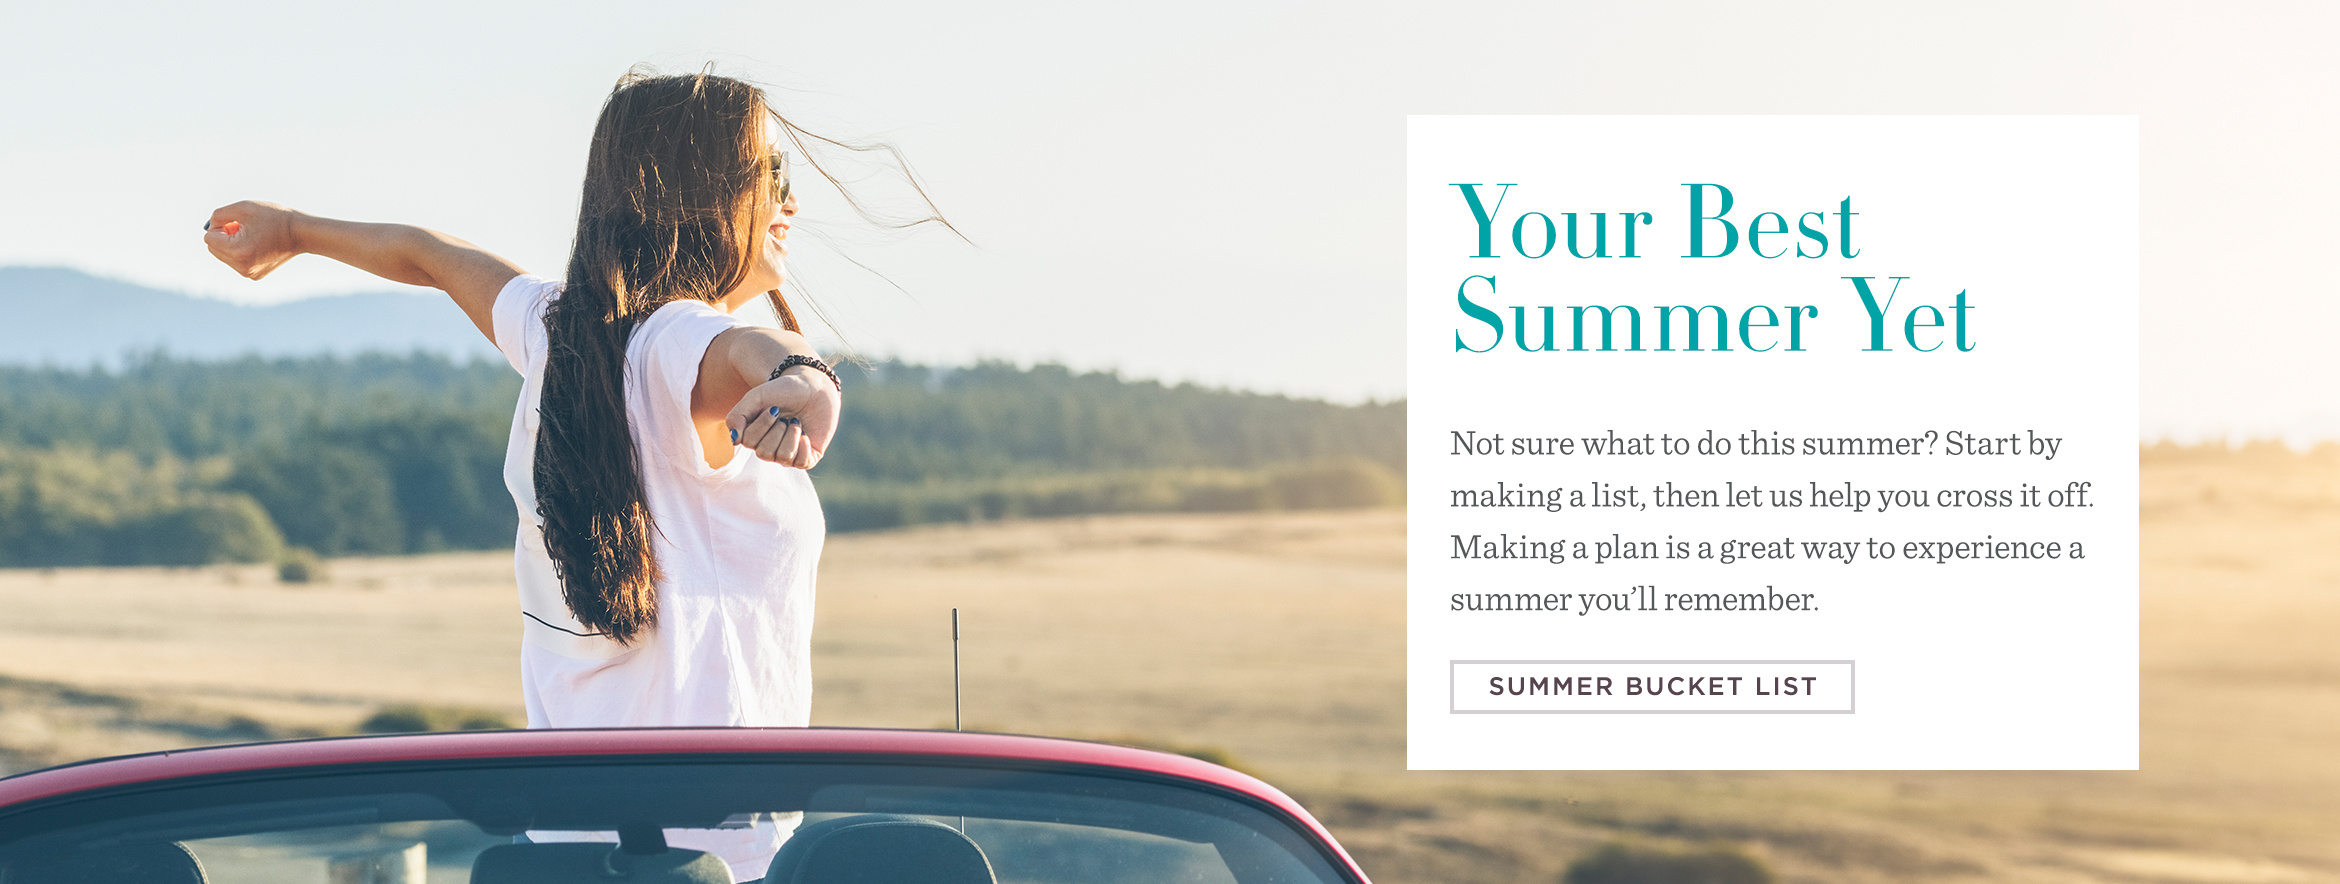 Your Best Summer Yet. Not sure what to do this summer? Start by making a list, then let us help you cross it off. Making a plan is a great way to experience a summer you'll remember. SUMMER BUCKET LIST